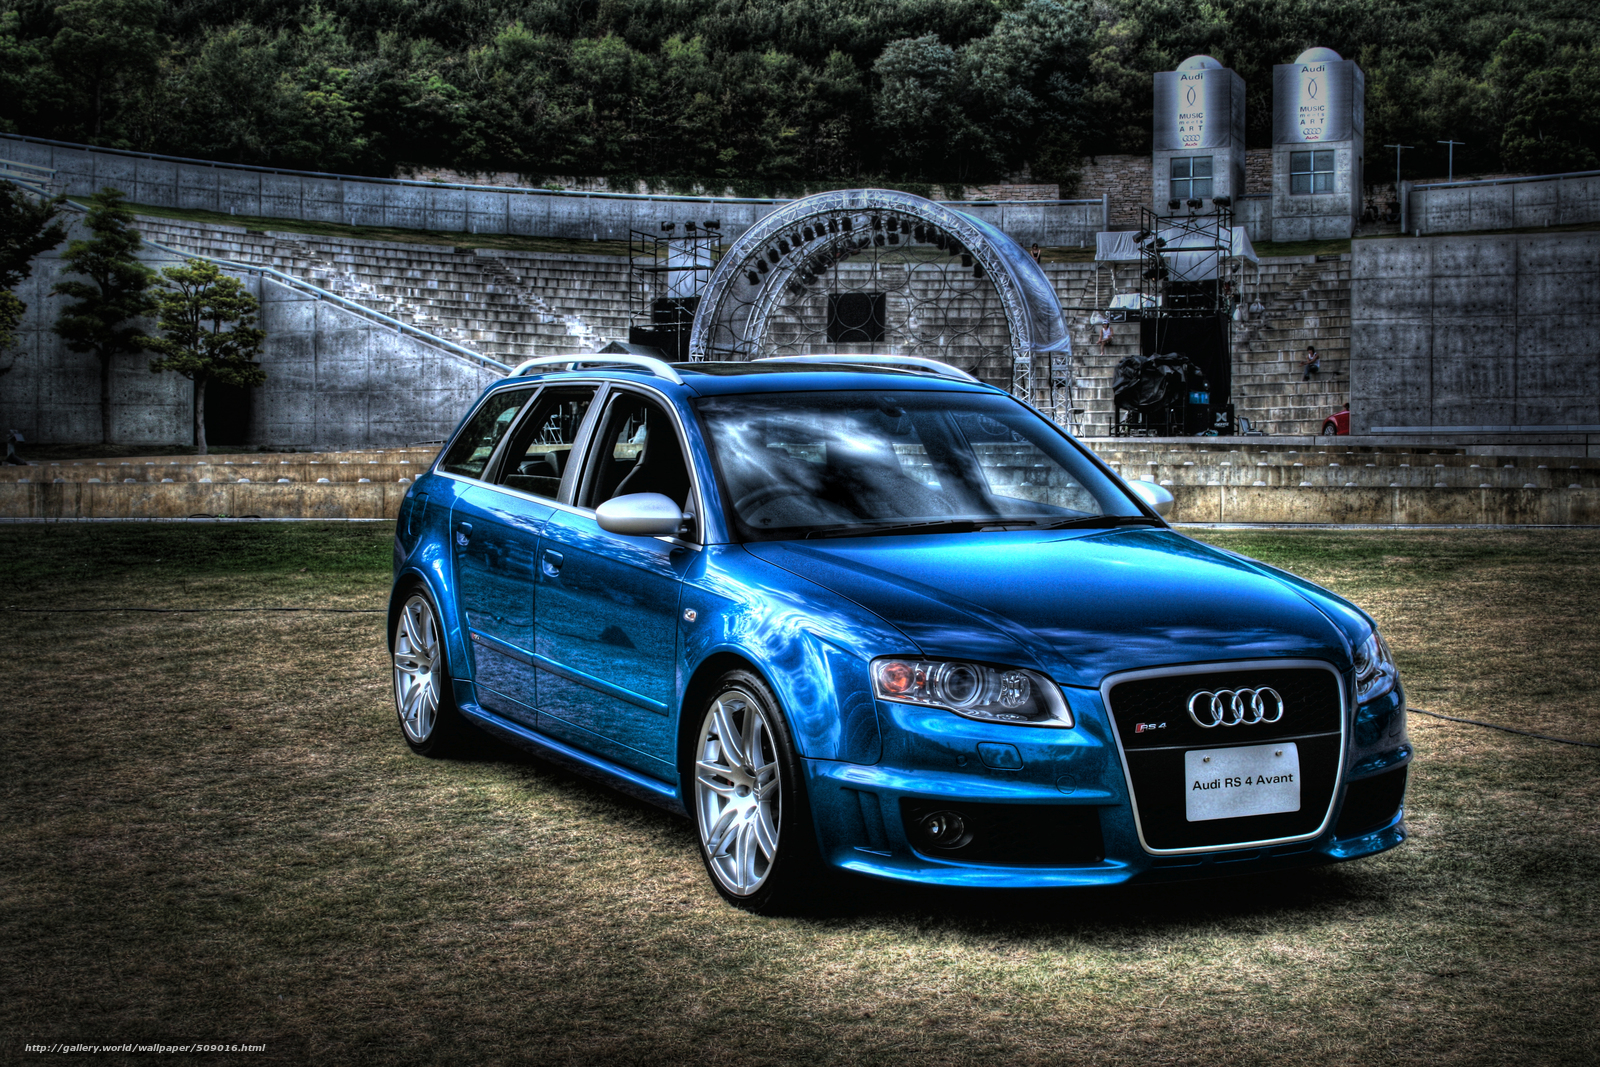 Download wallpaper audi rs4 avant hdr machine free desktop wallpaper in the resolution 3888x2592 picture 509016